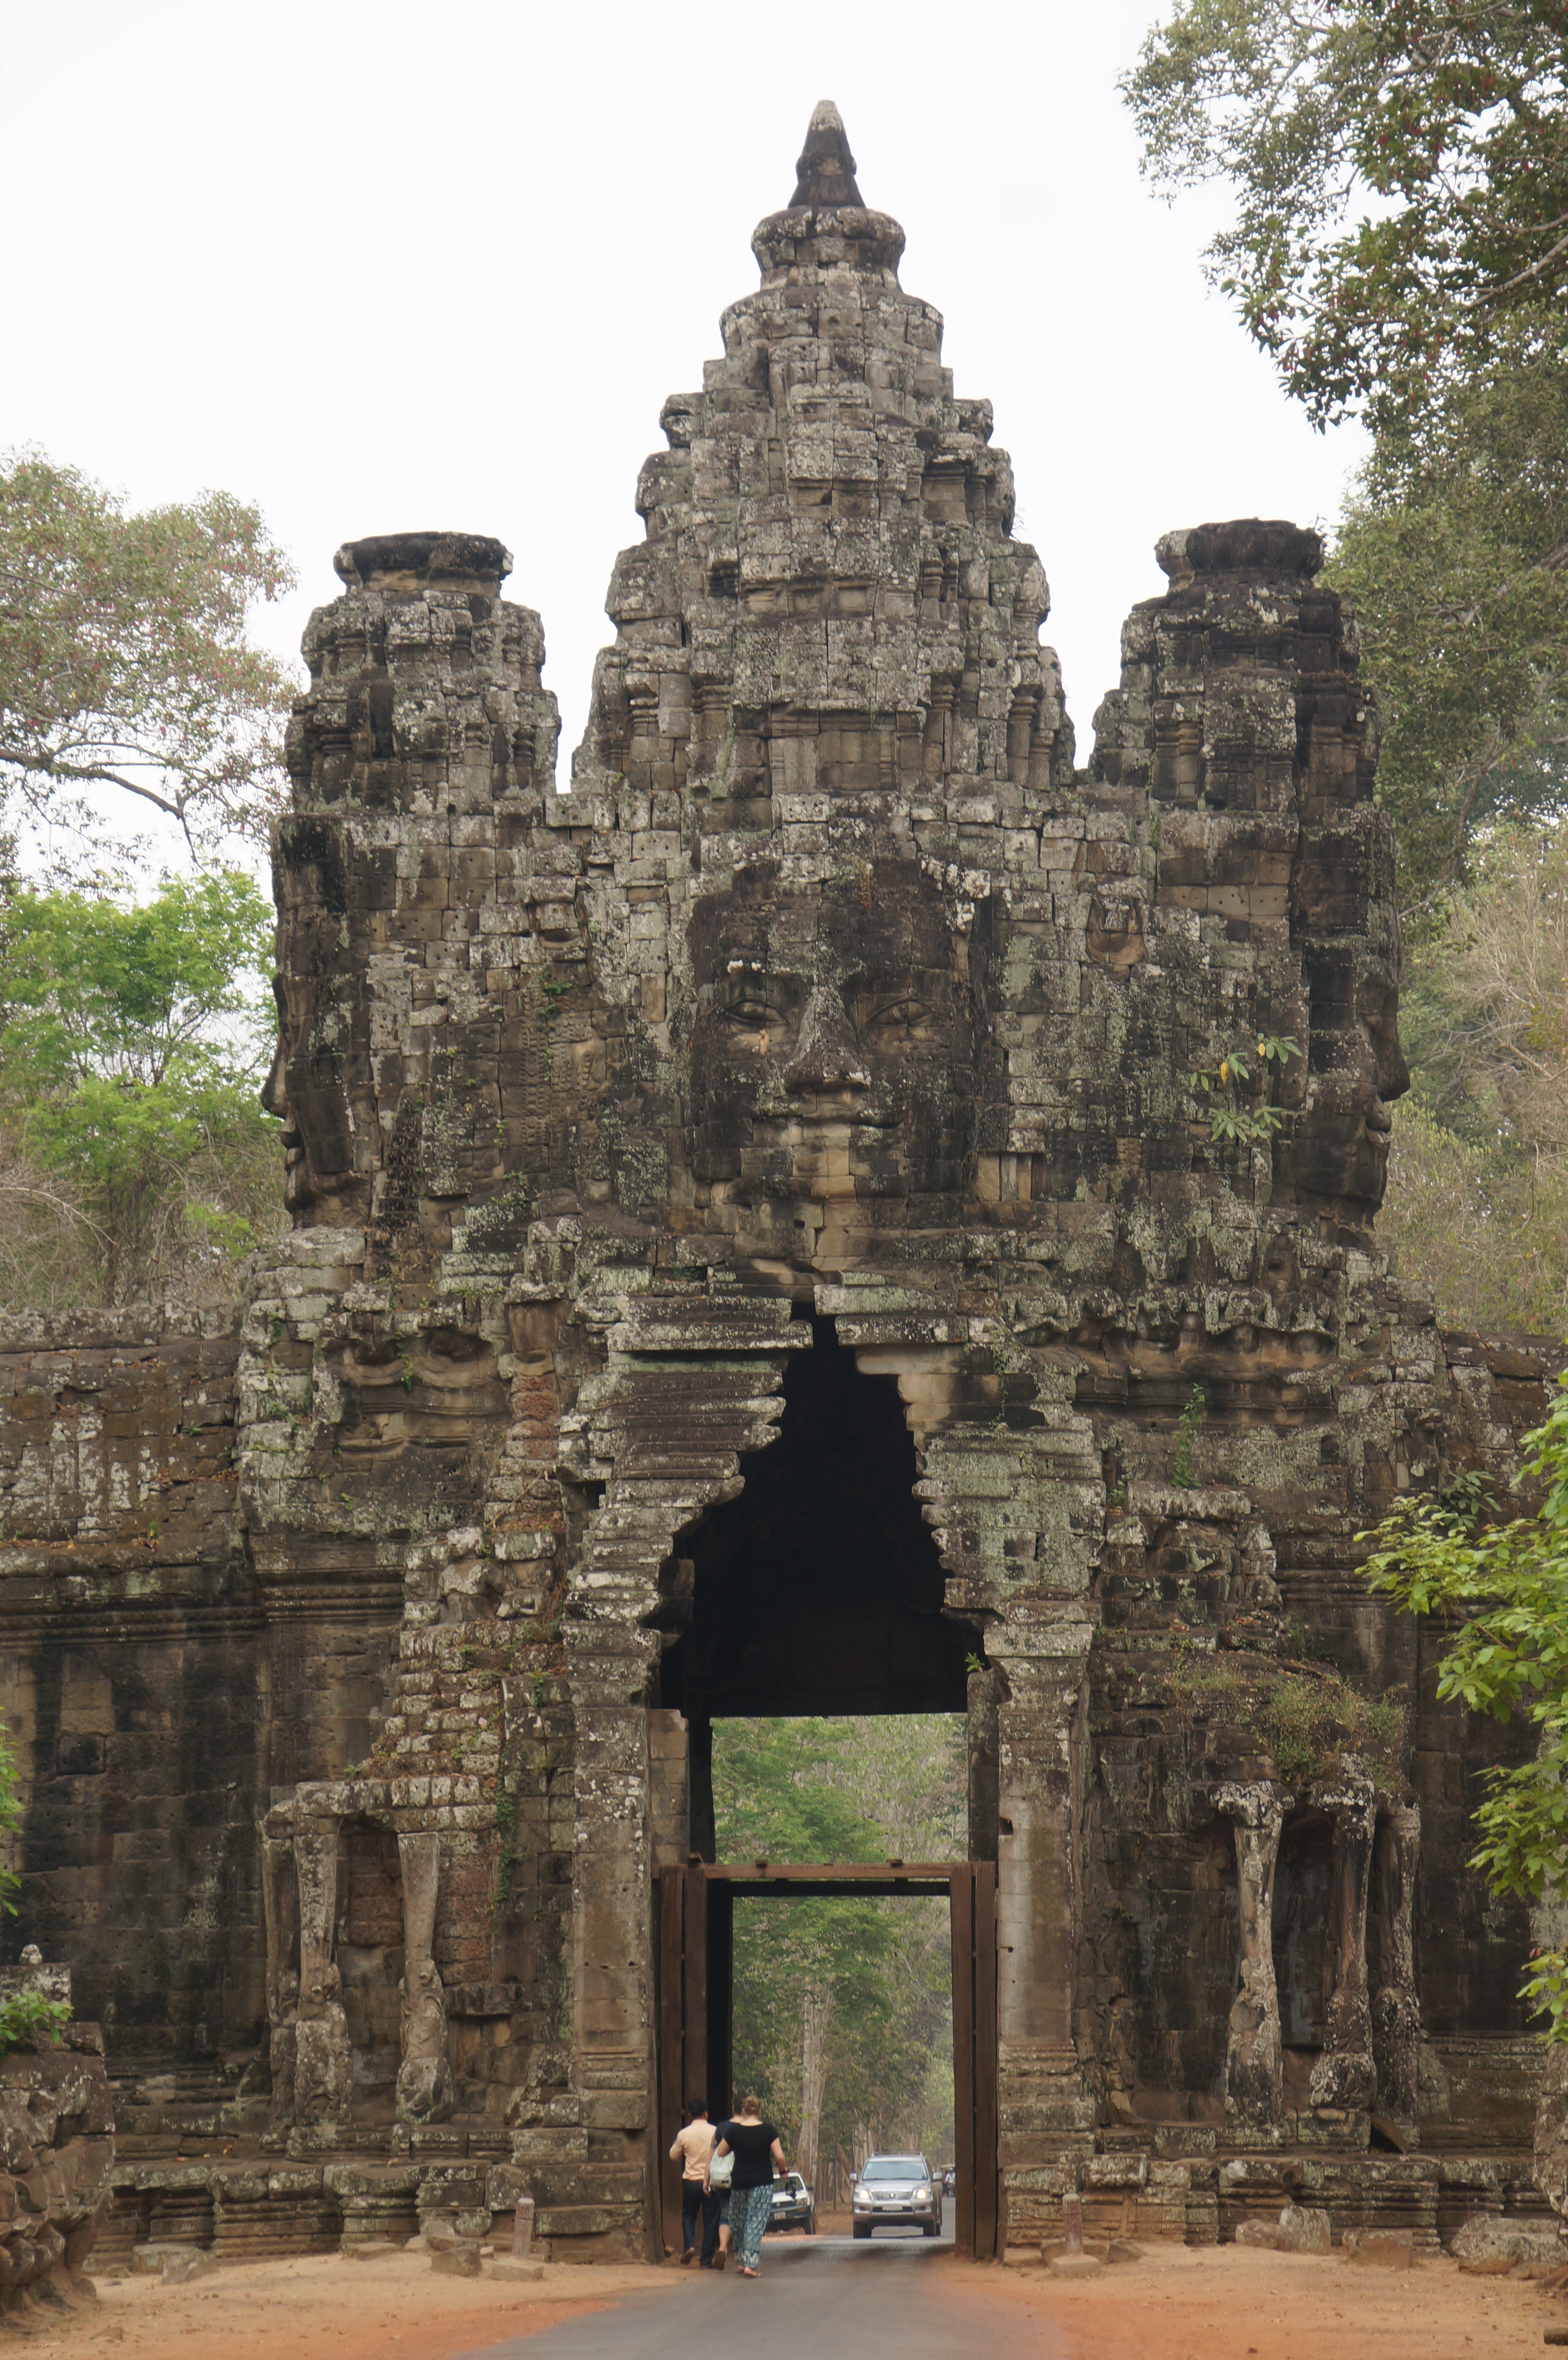 The entrance gate to Angkor Thom. It's only wide enough for a horse or elephant.